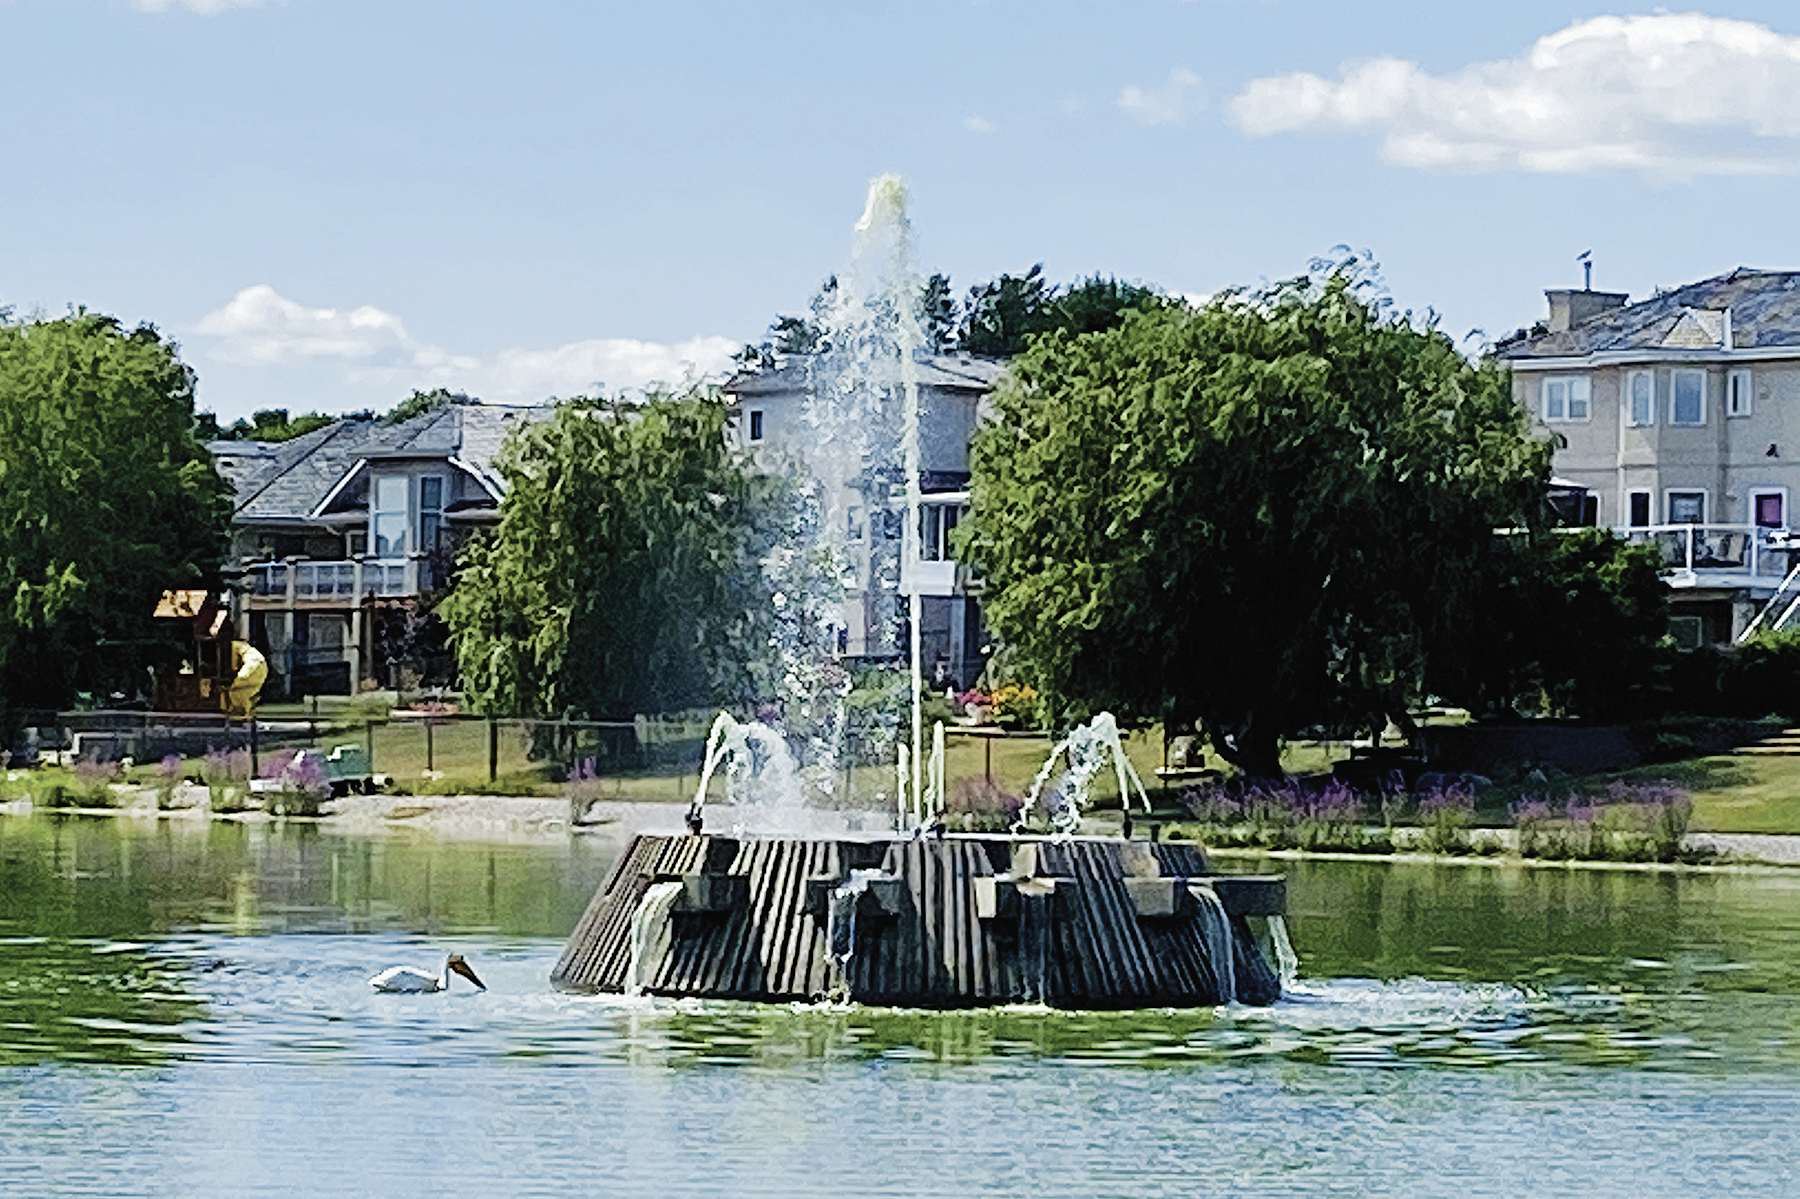 Whyte Ridge residents were successful in their efforts to get fountains running again in the area's retention ponds.